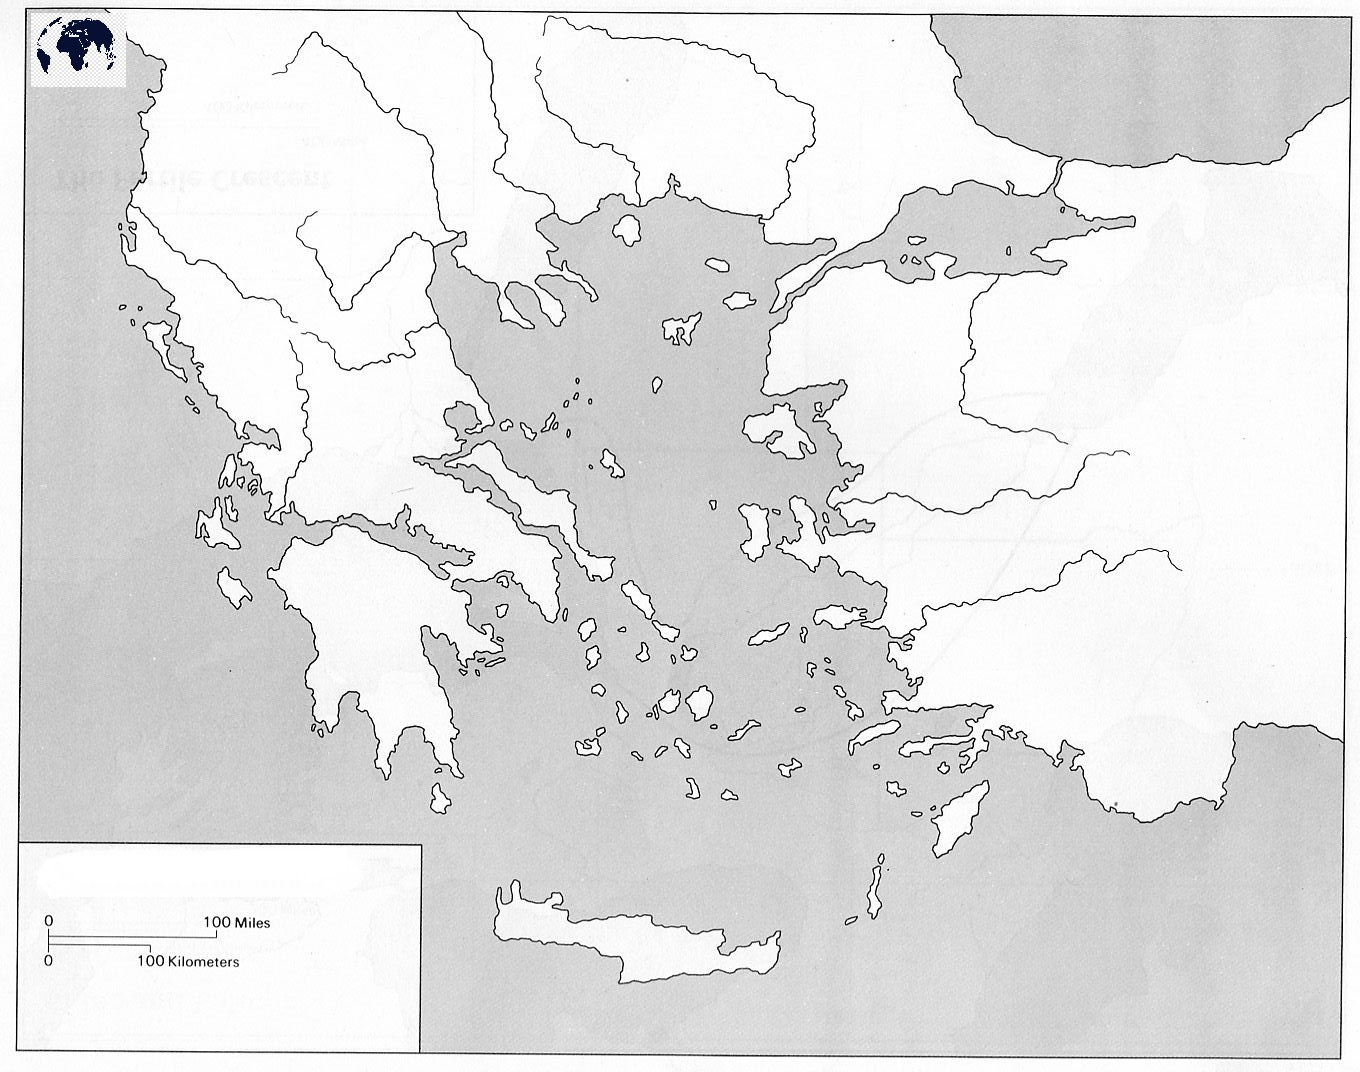 Map of Greece for Practice Worksheet